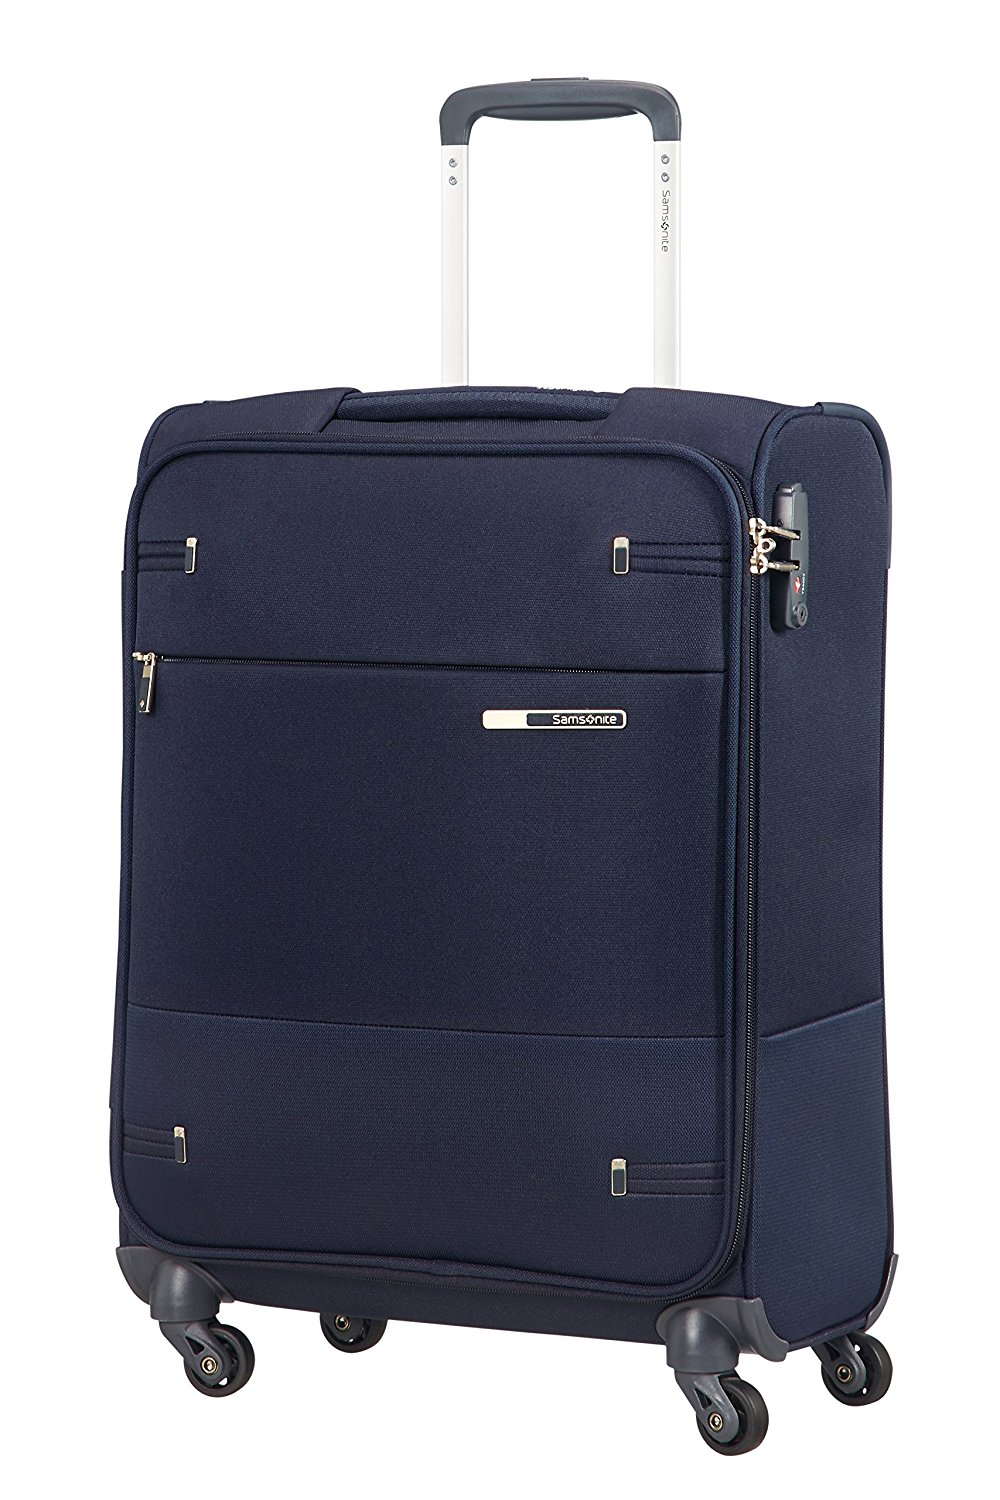 SAMSONITE Base Boost Spinner 55/20 Koffer, S (55cm-37L), 39 L, Blau (Navy Blue)